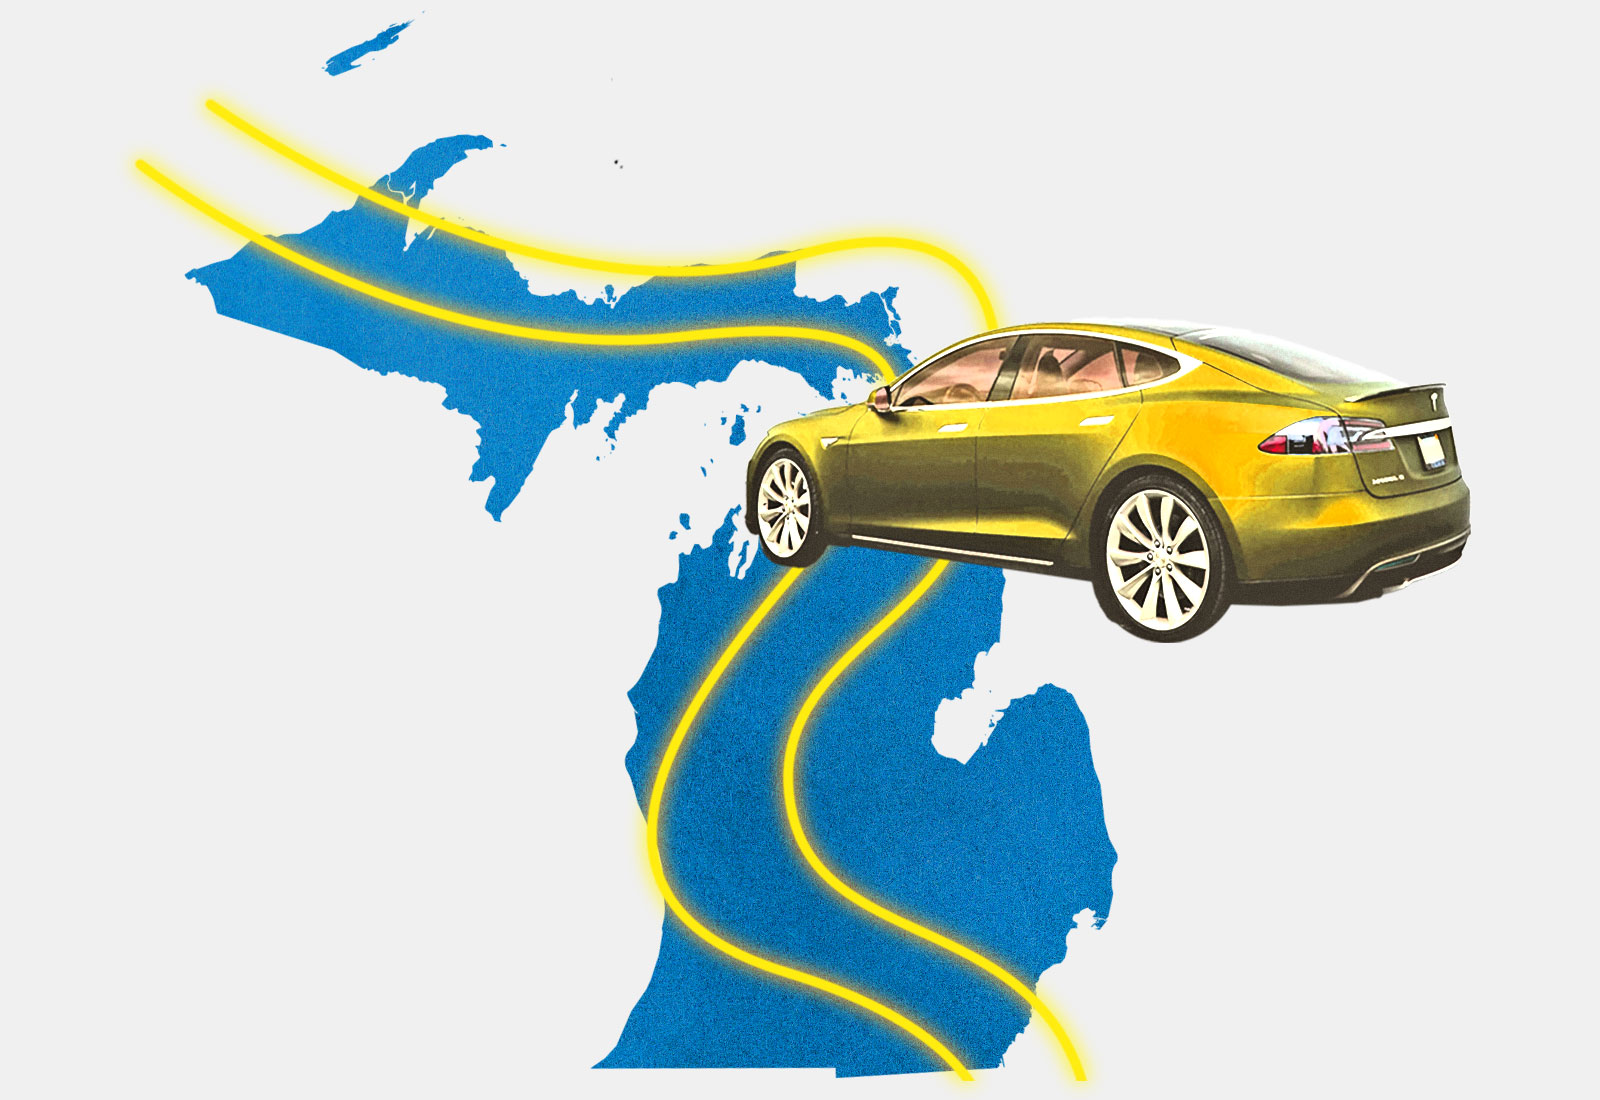 Electric car with neon lines representing roads on top of Michigan